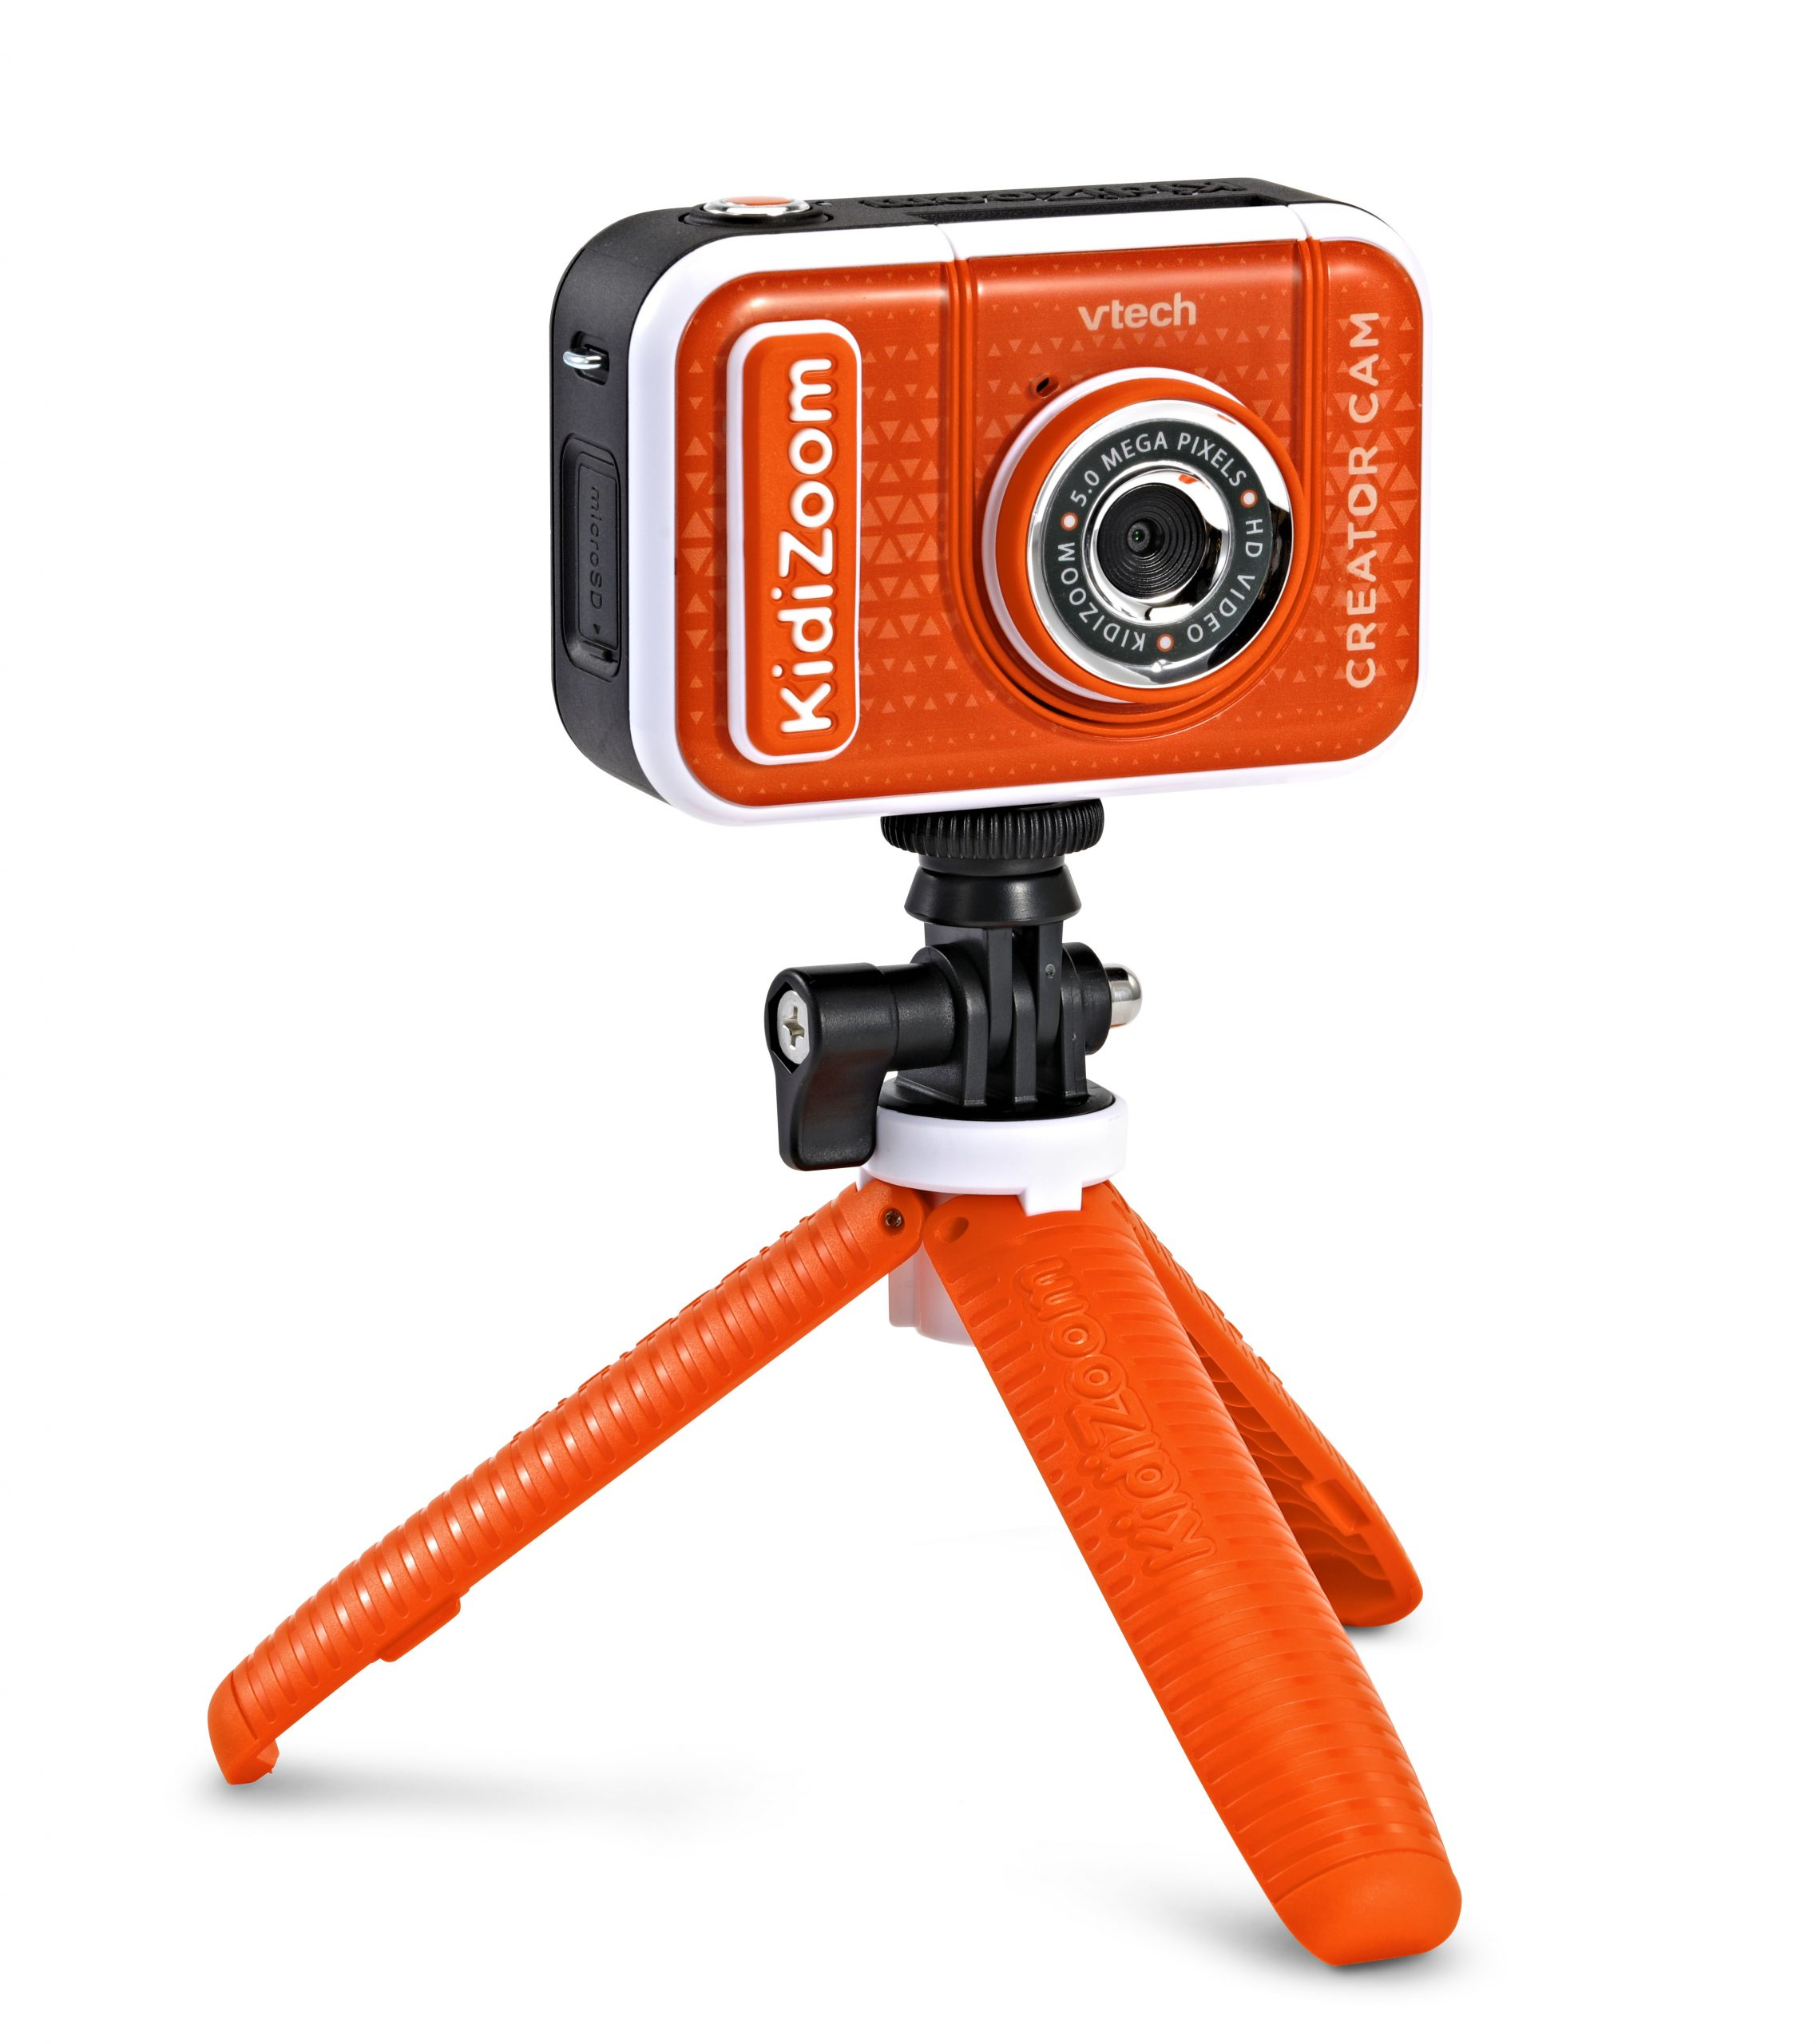 KidiZoom Creator Cam, vtech, kids toys, sweet suite at home, kid holiday gift ideas, youtube camera